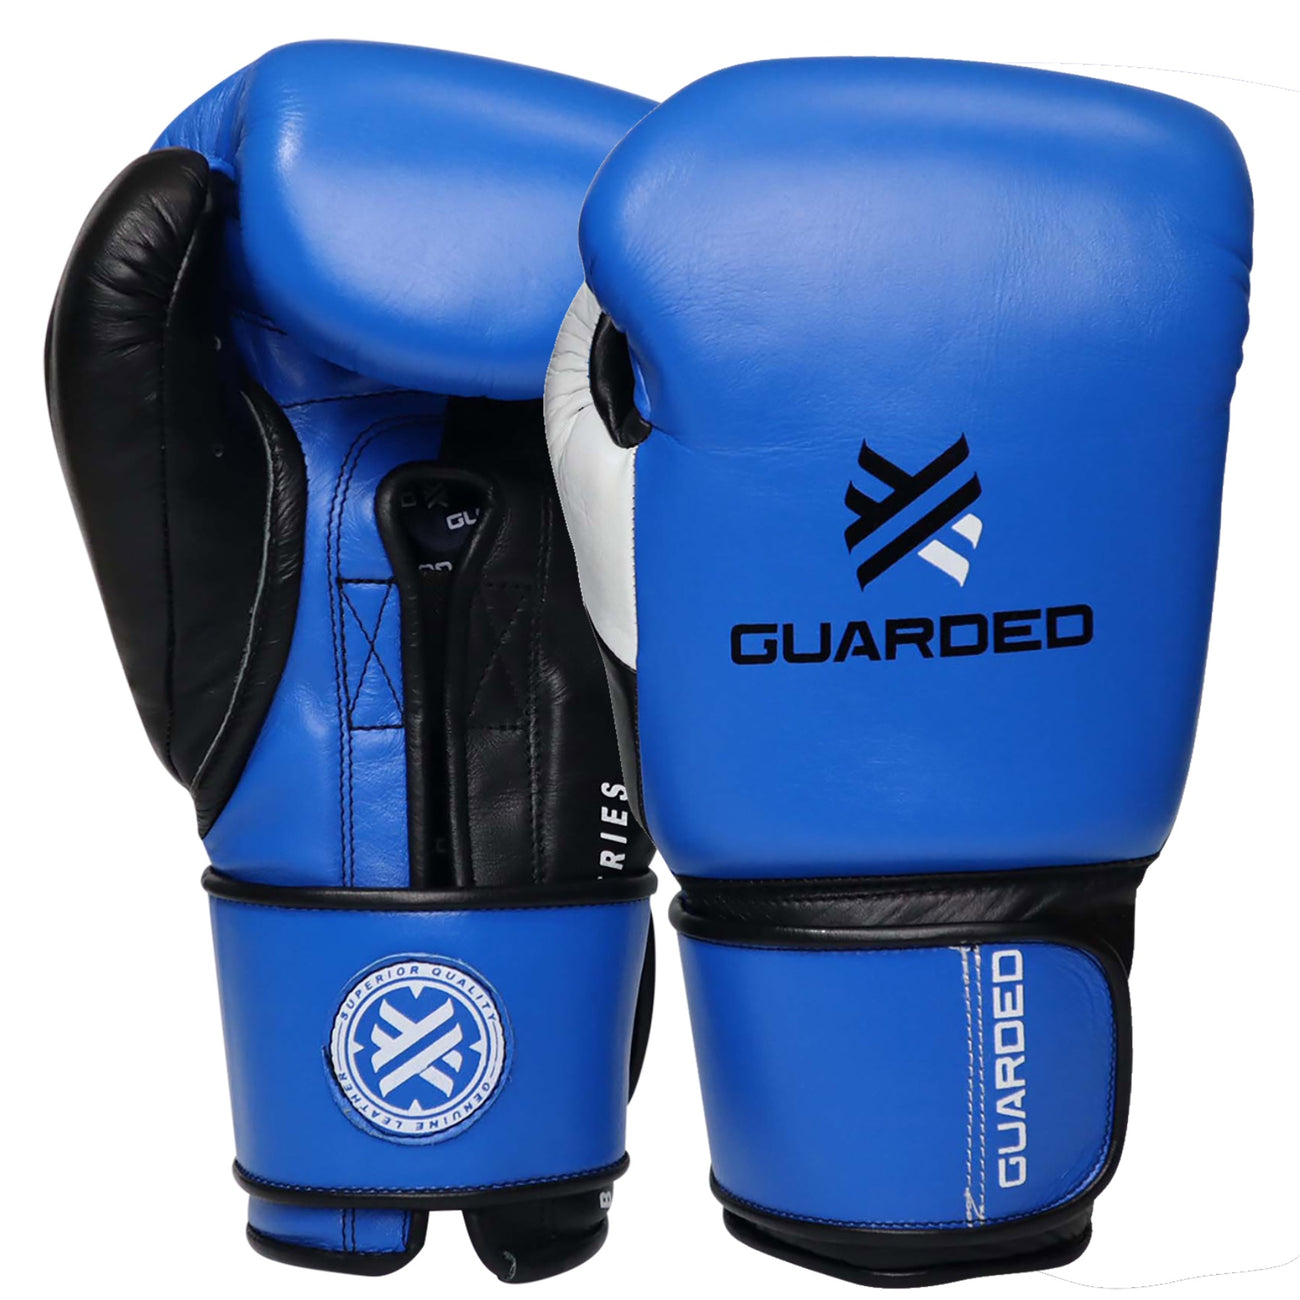 Beretta Pro Boxing Gloves, Blue/Black